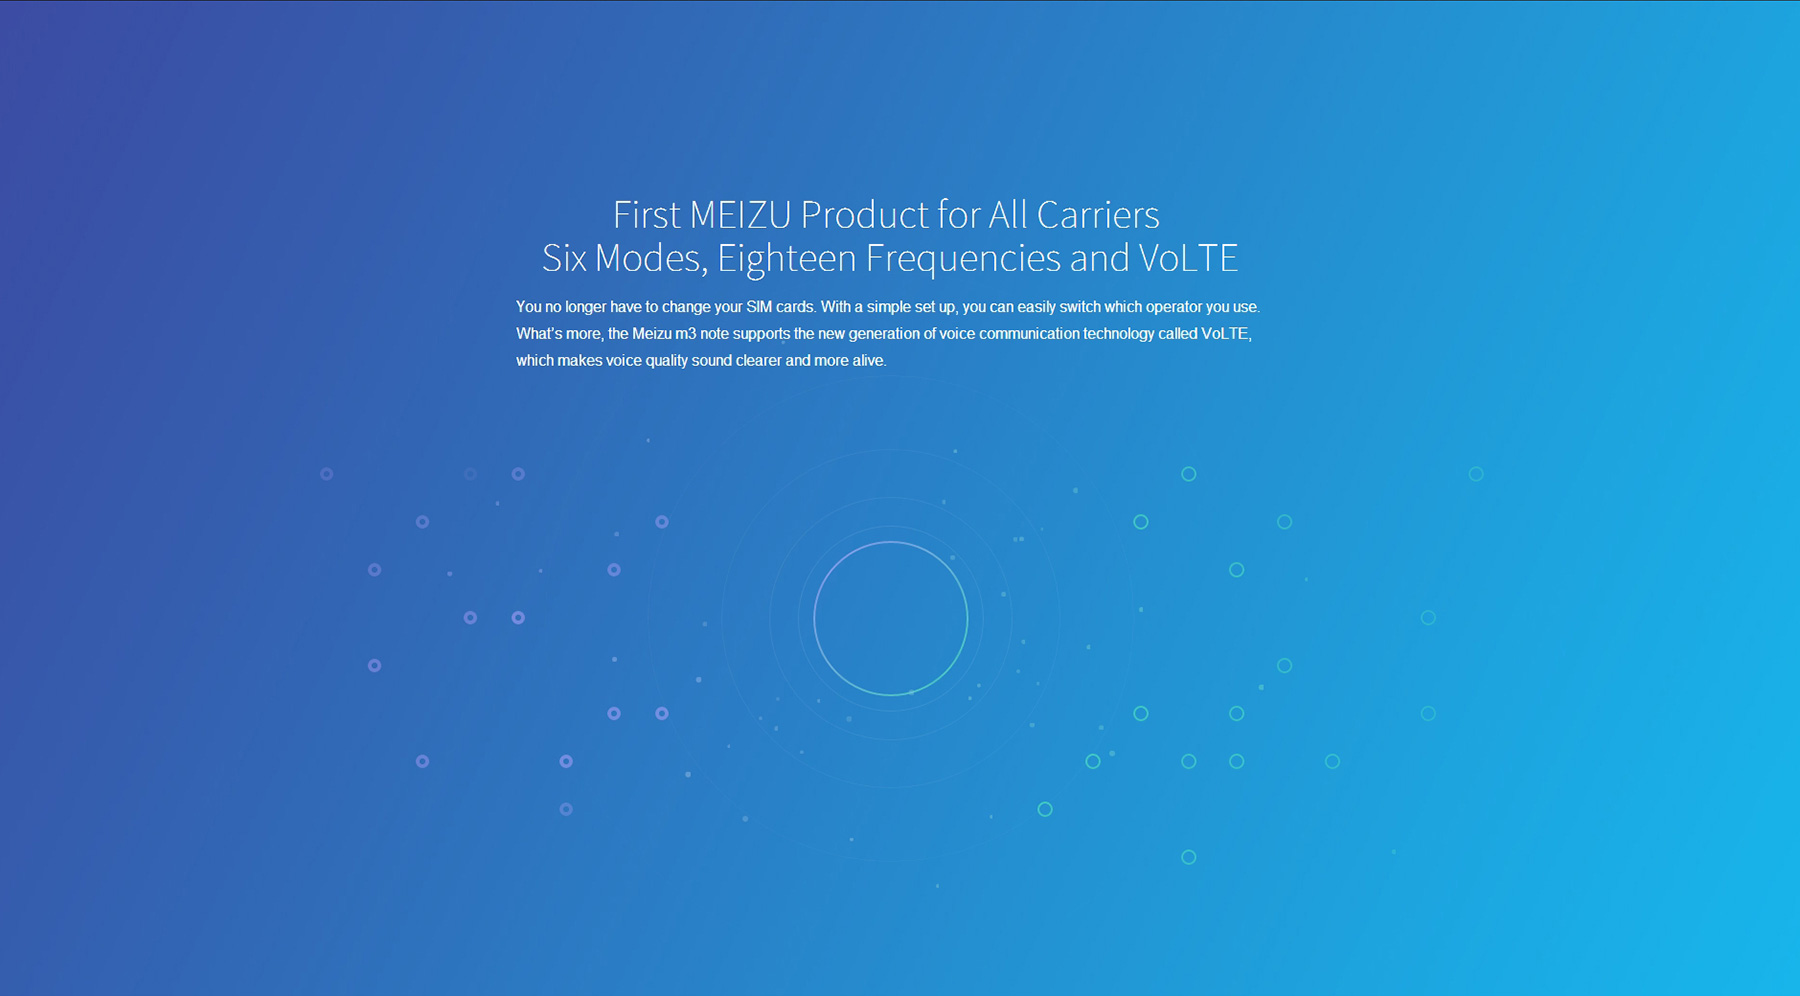 MEIZU M3 Note International Edition Android 5.1 4G Phablet with 5.5 inch FHD Screen Helio P10 Octa Core 3GB RAM 32GB ROM Fingerprint 13MP Rear Camera IR Proximity Sensor